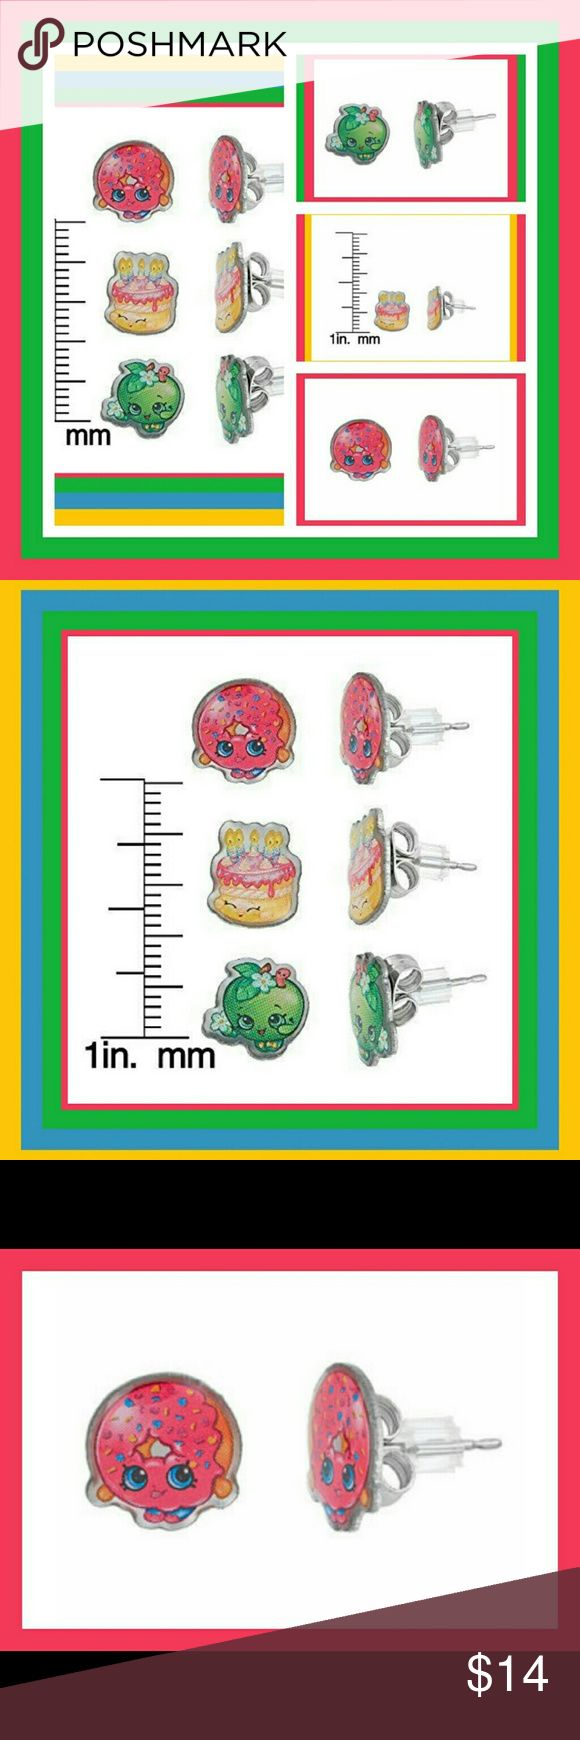 SHOPKINS STAINLESS STEEL EARRINGS TRIO KIDS SHOPKINS STAINLESS STEEL EARRINGS TRIO SET FOR GIRLS FROM MOOSE TOYS. D'LISH DONUT, APPLE BLOSSOM, WISHES PUT THE PERFECT FINISHING TOUCH ON HER FAVORITE OUTFIT WITH ANY OF THESE THREE (3)BEAUTIFUL & FUN PIERCED EARRINGS Moose Toys Accessories Jewelry